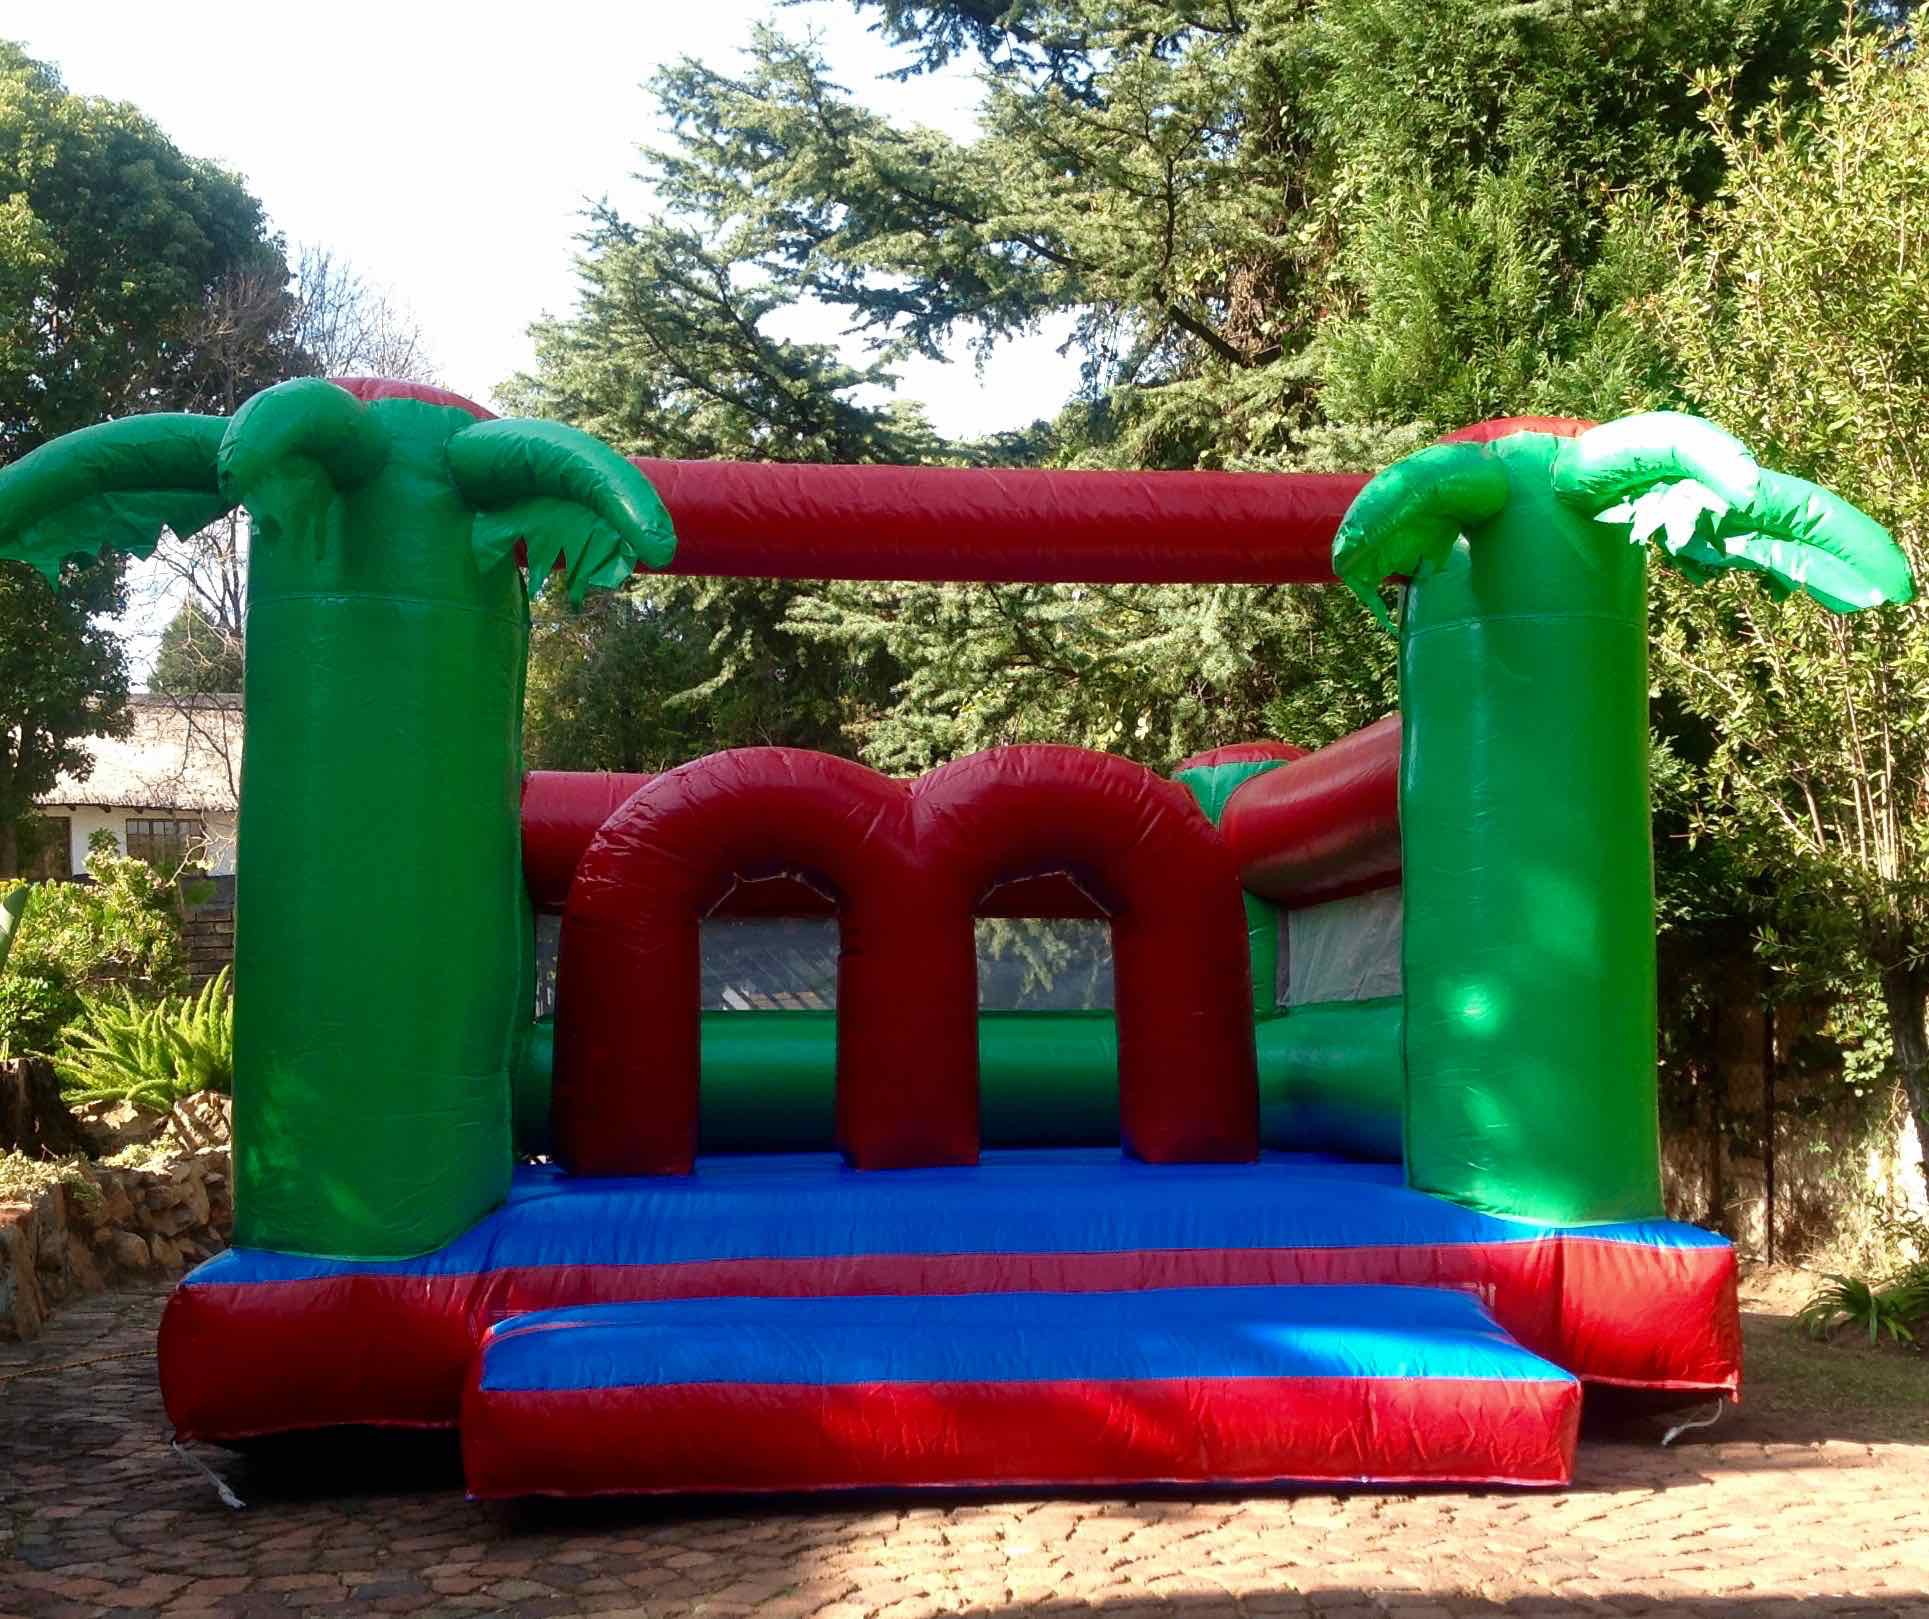 Jumping Castle Jungle Jumper